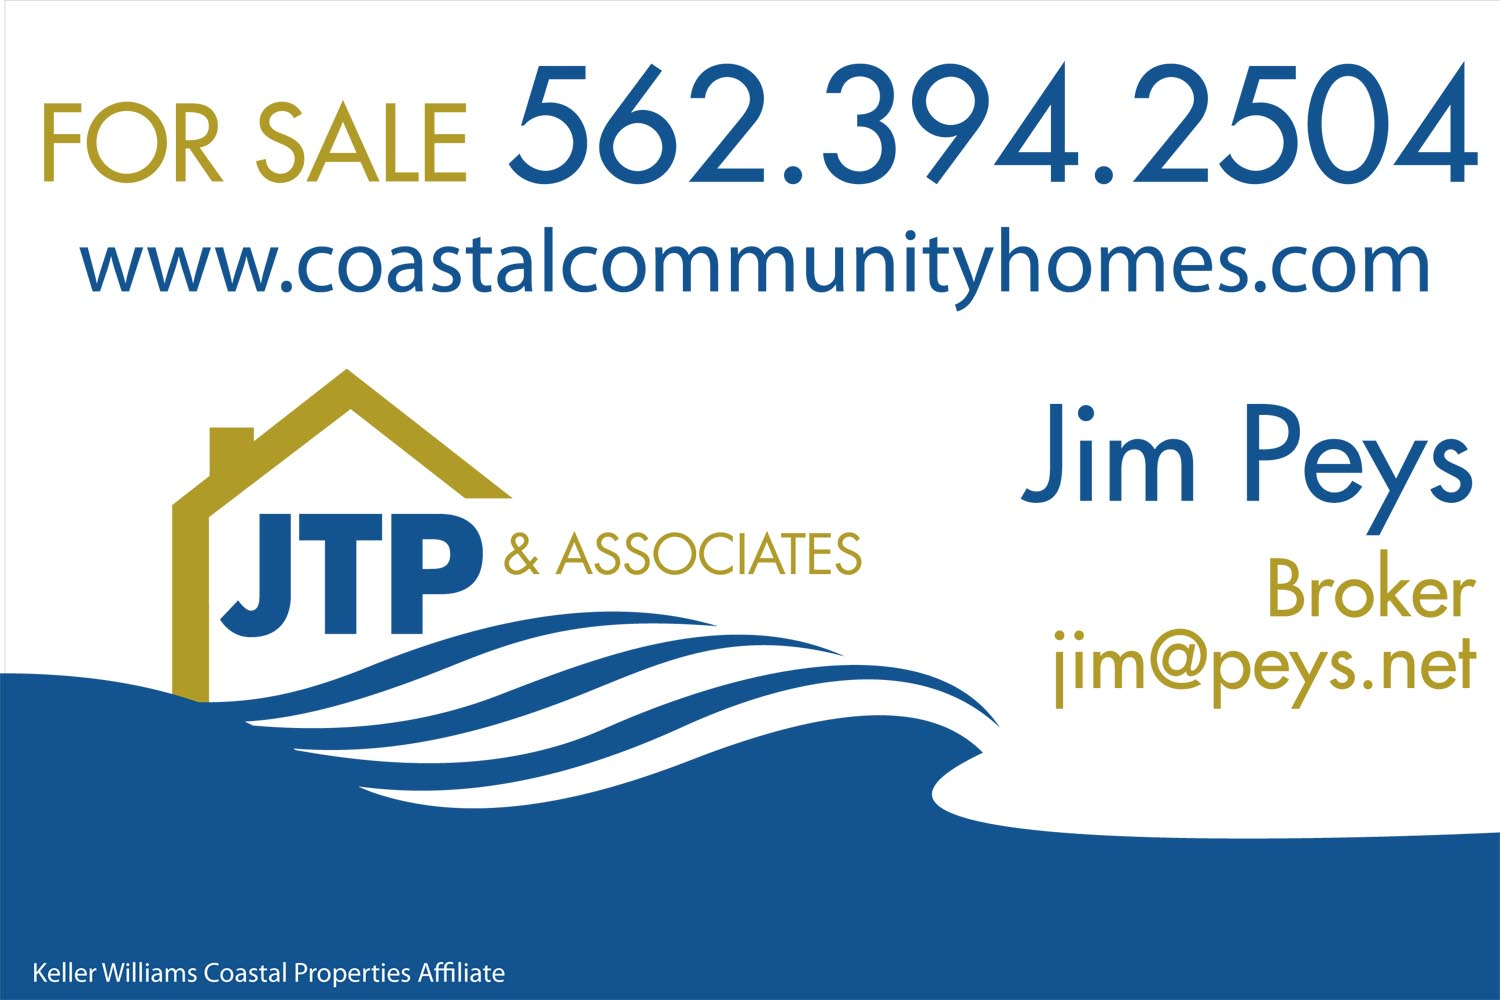 custom real estate signs  for sale signs  real estate